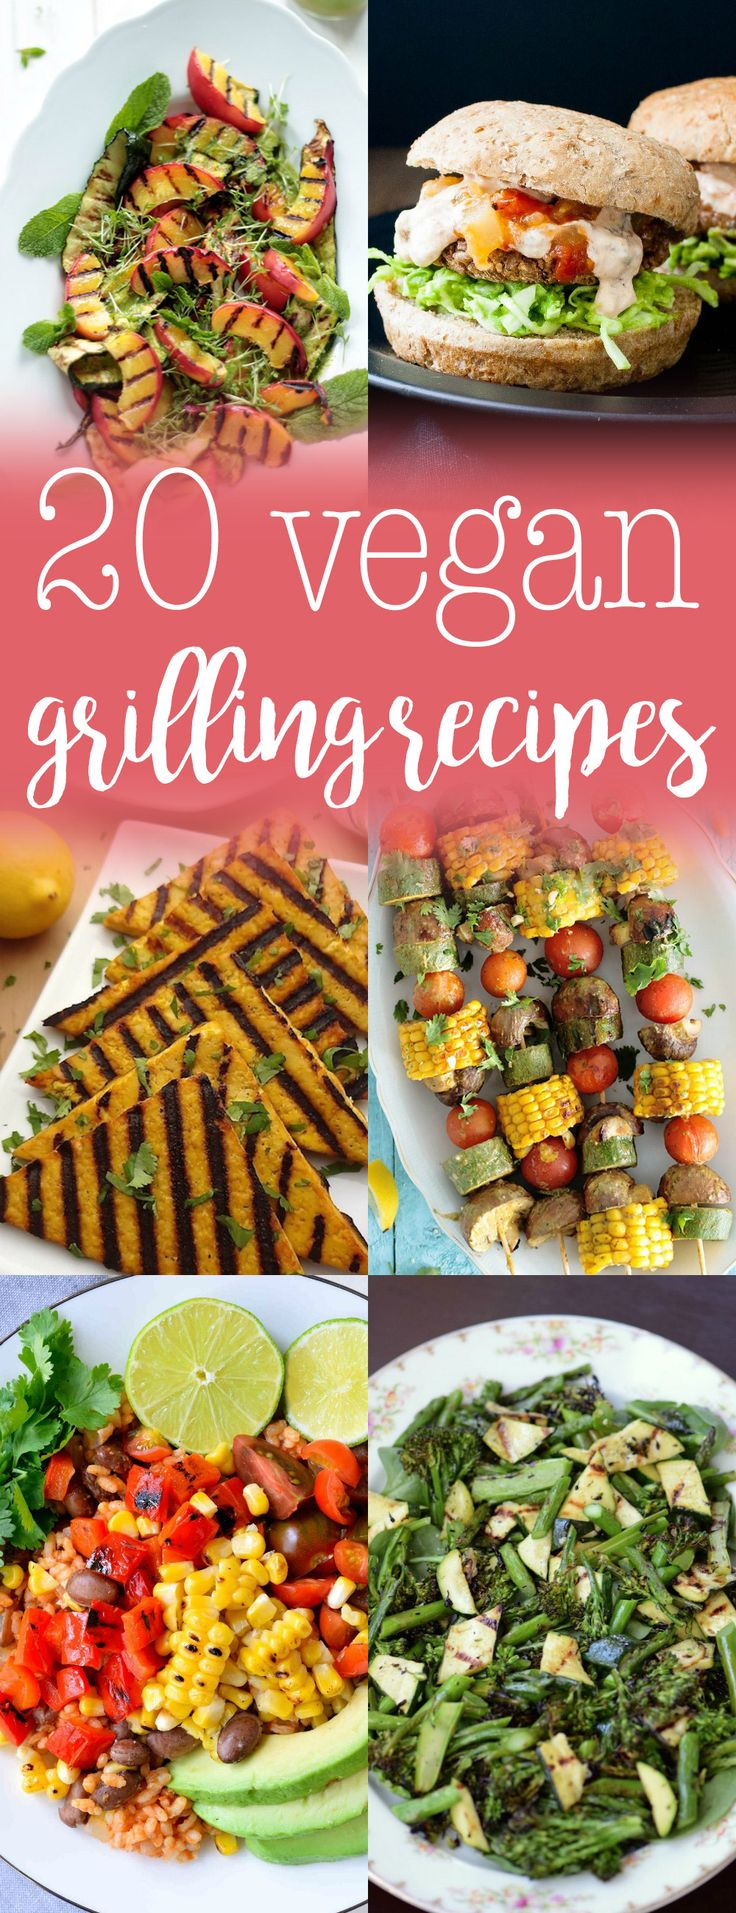 20 Vegan Grilling Recipes - summer grilling isn't just for meat! There are plenty of plant-based recipes for the grill. via @thecrunchychron